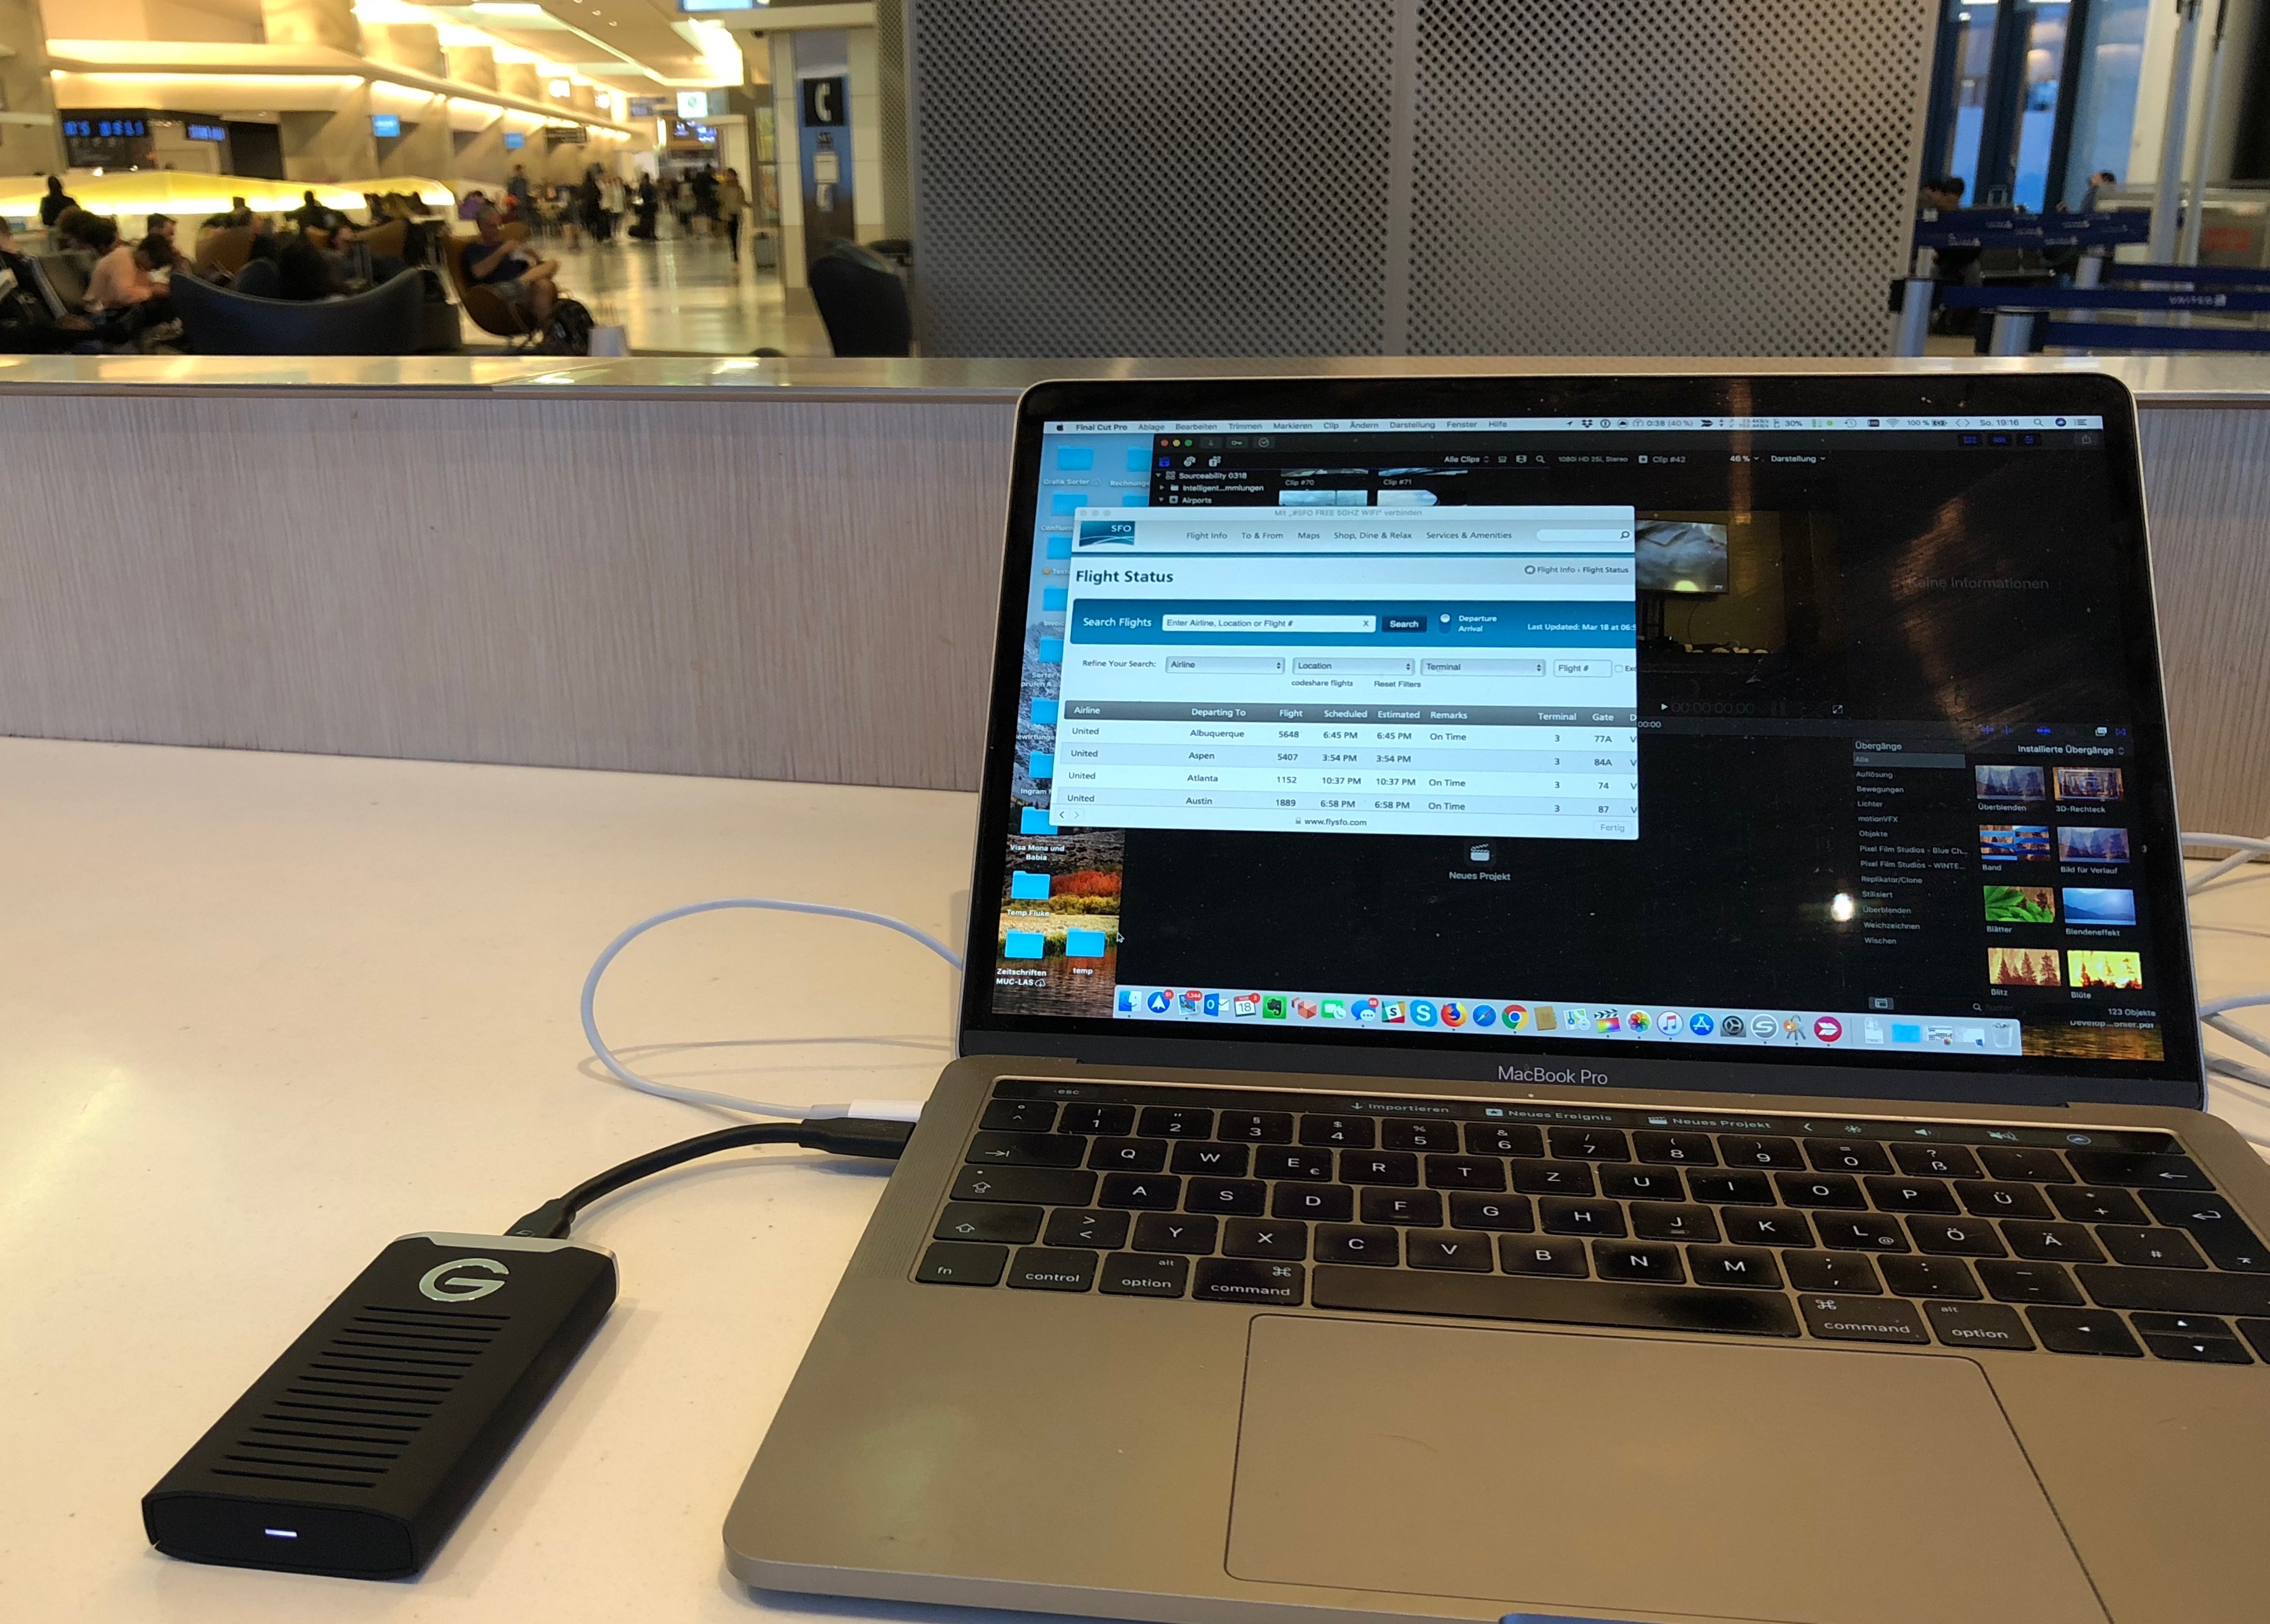 G-Drive mobile SSD on MacBook Pro